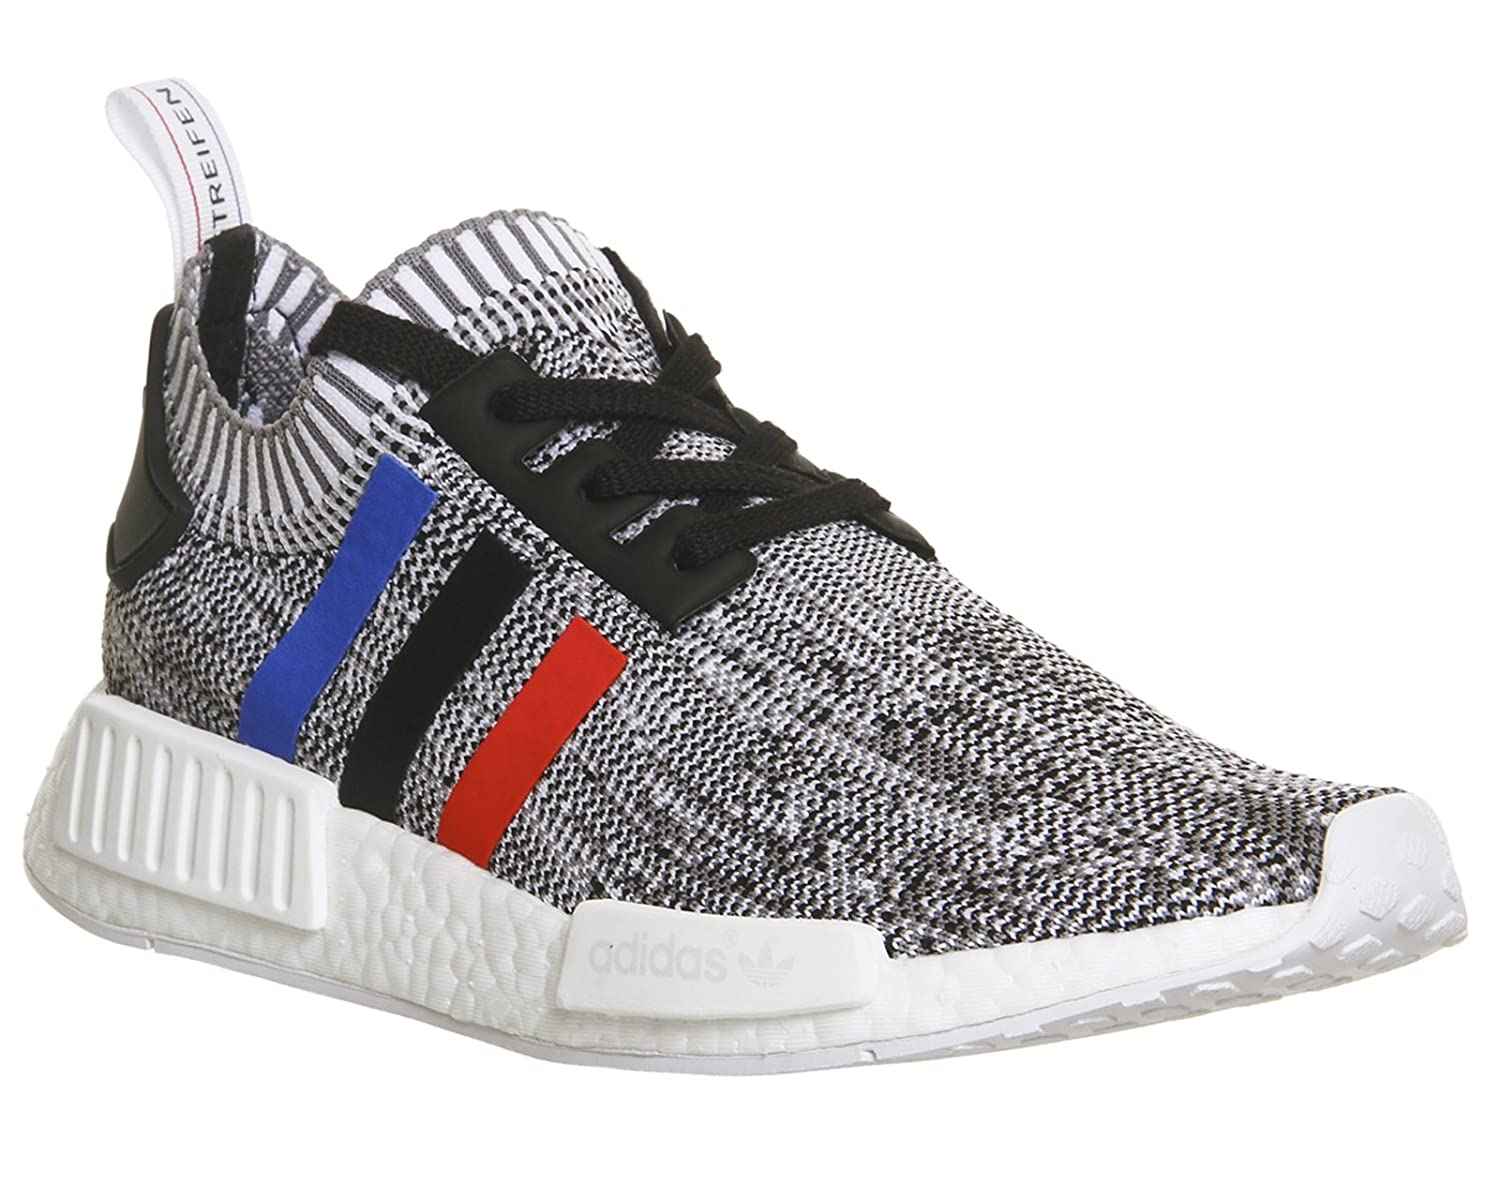 Adidas Men's Nmd R1 Ankle-High Fabric Running Shoe B01MS10SSU 4.5 D(M) US|White/Core Red/Core Black